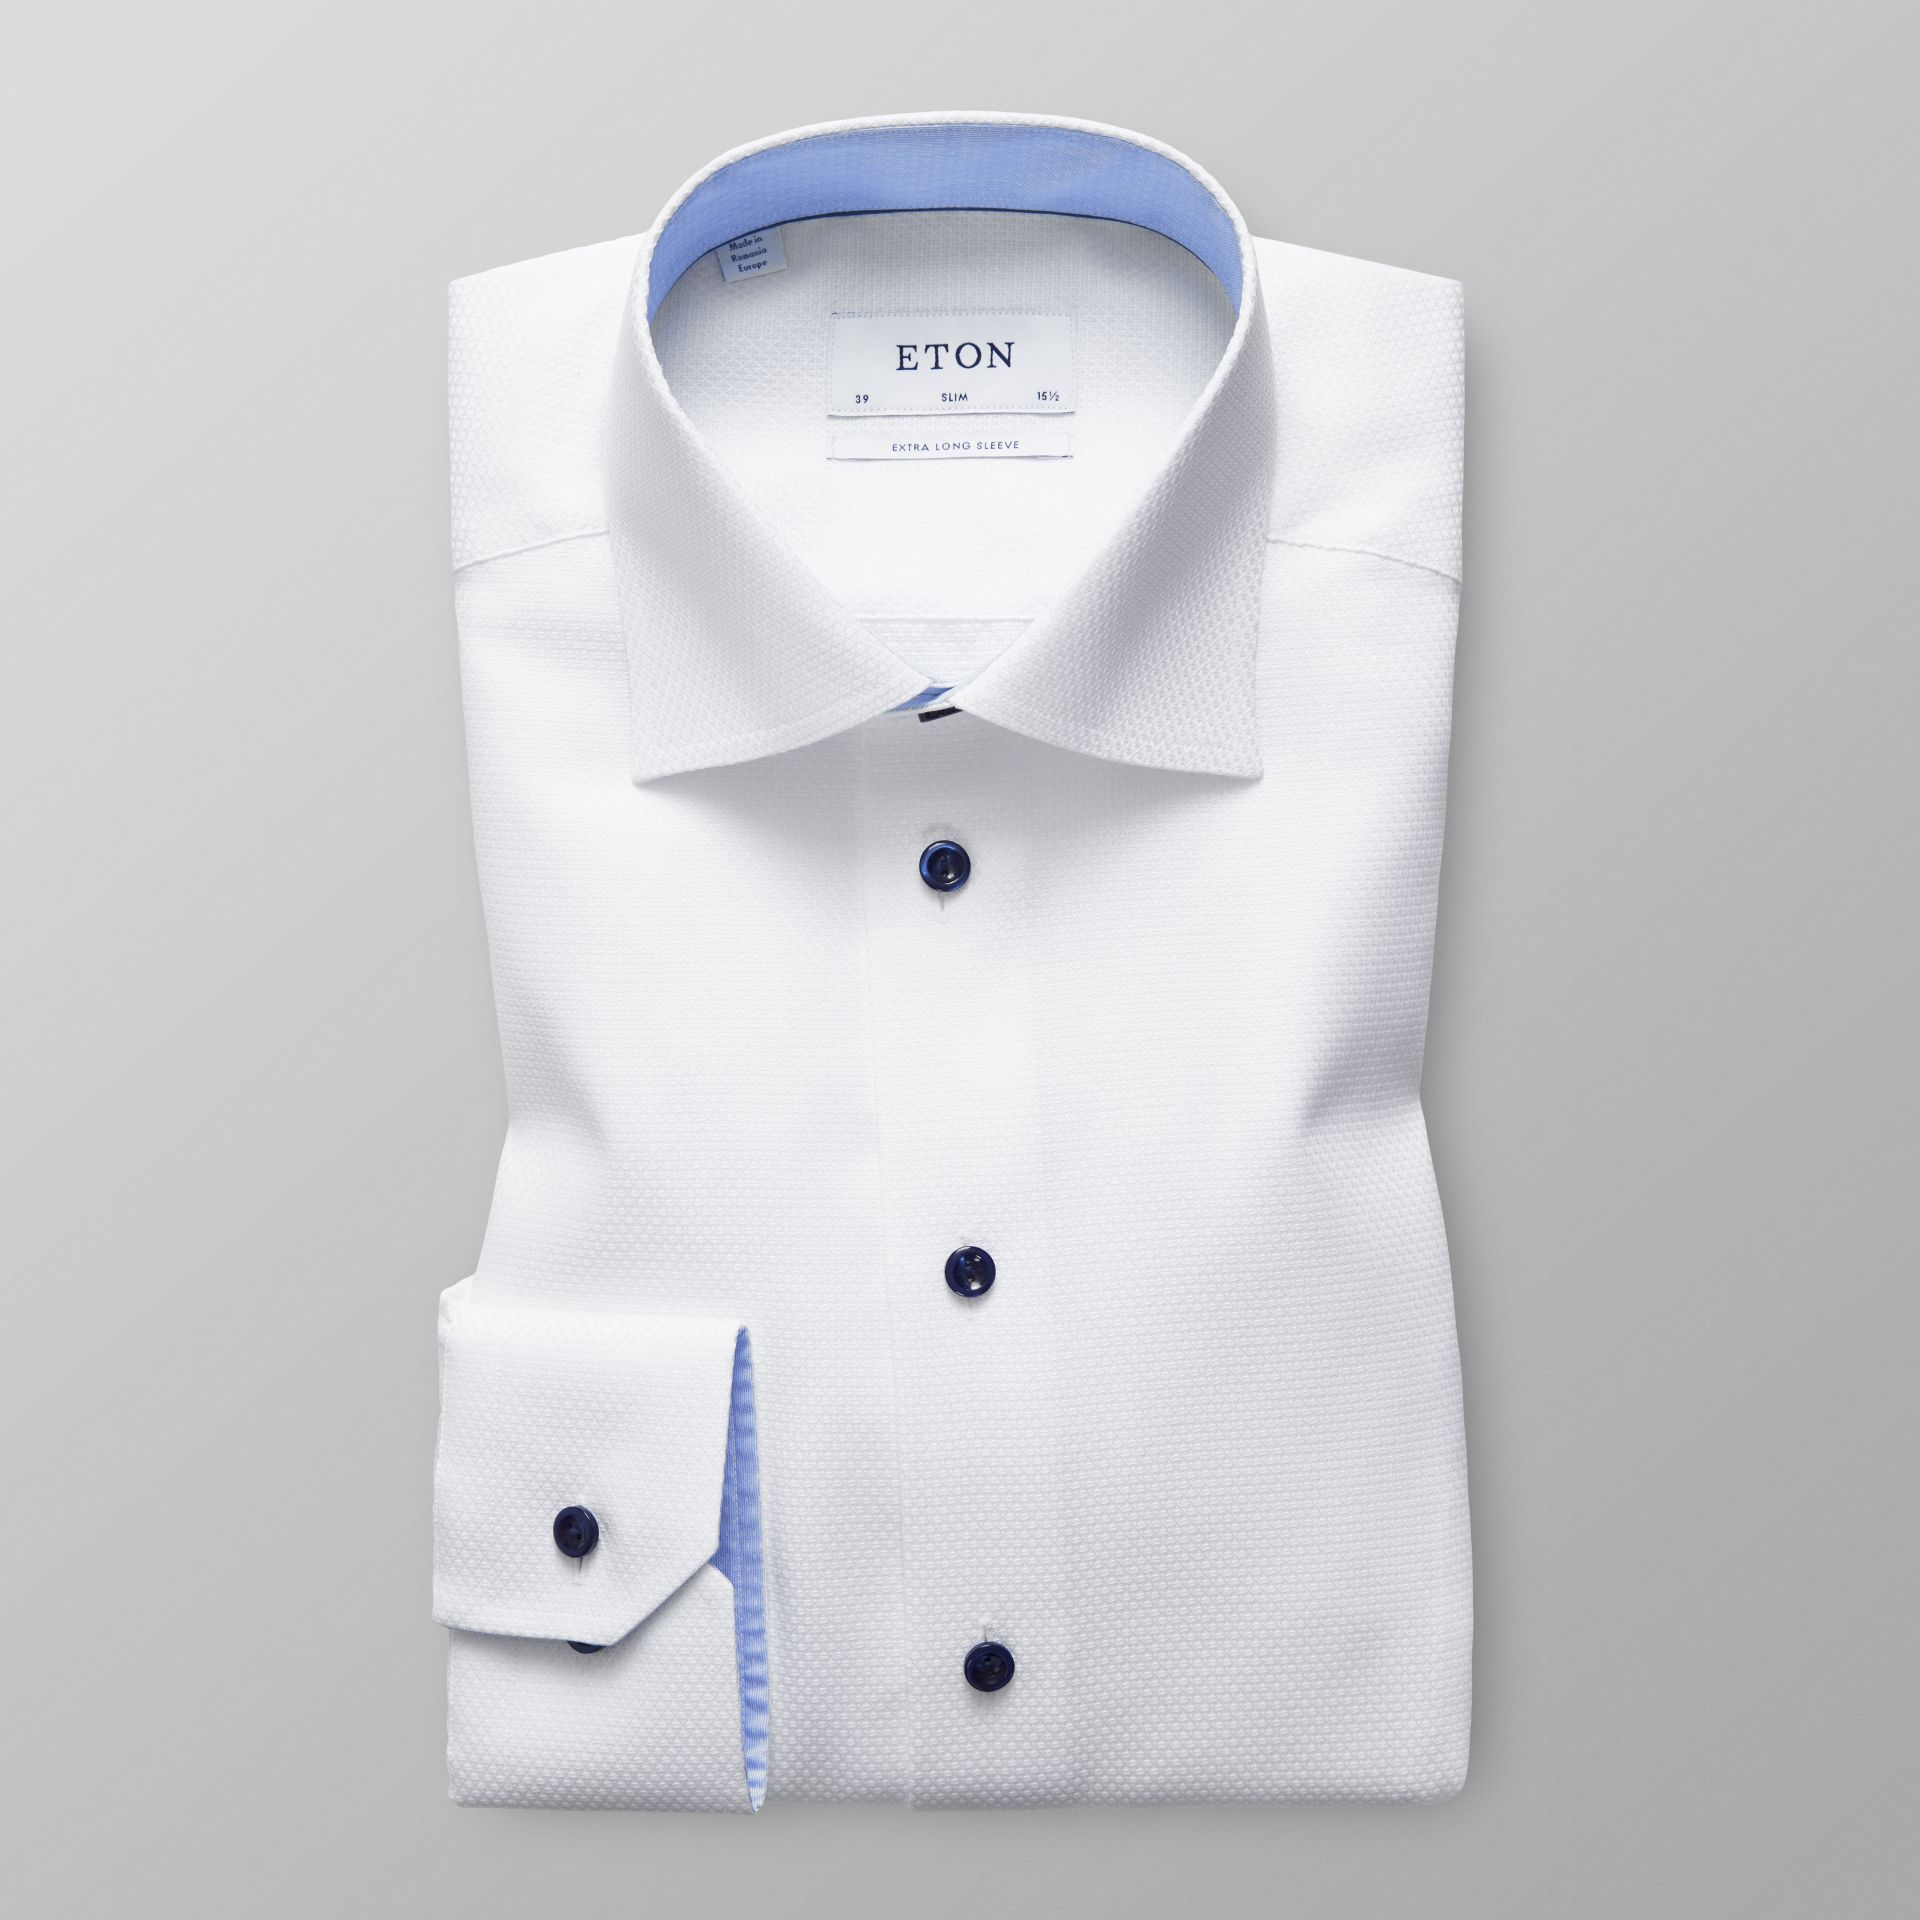 White Twill Shirt with Navy Buttons - Slim fit | Eton Shirts US